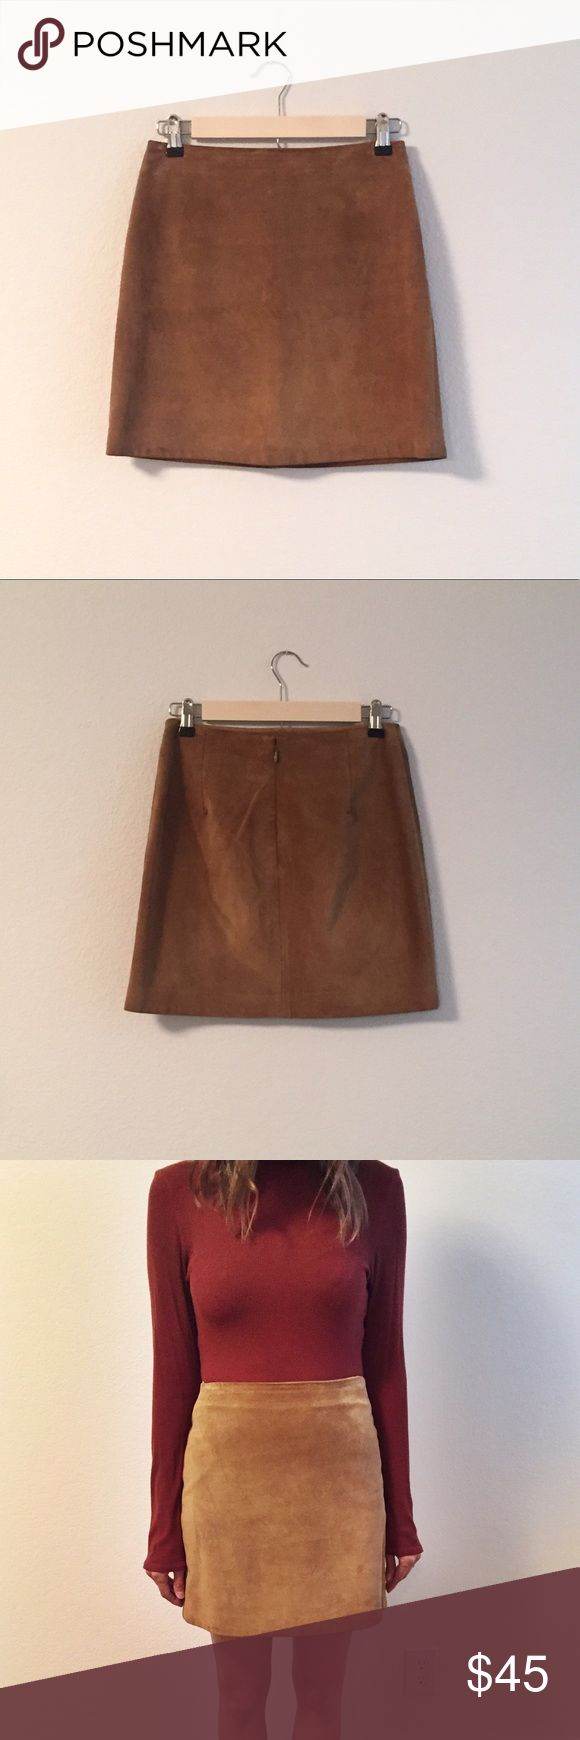 """Banana Republic Tan Leather Skirt 100% genuine leather // lining is 100% acetate ••• front length and side seams measure 16"""" // back seam is 15 and 5/8"""" ••• small stain at bottom of back right dart (shown in close up photo) and hanger impressions at waistband Banana Republic Skirts Mini"""